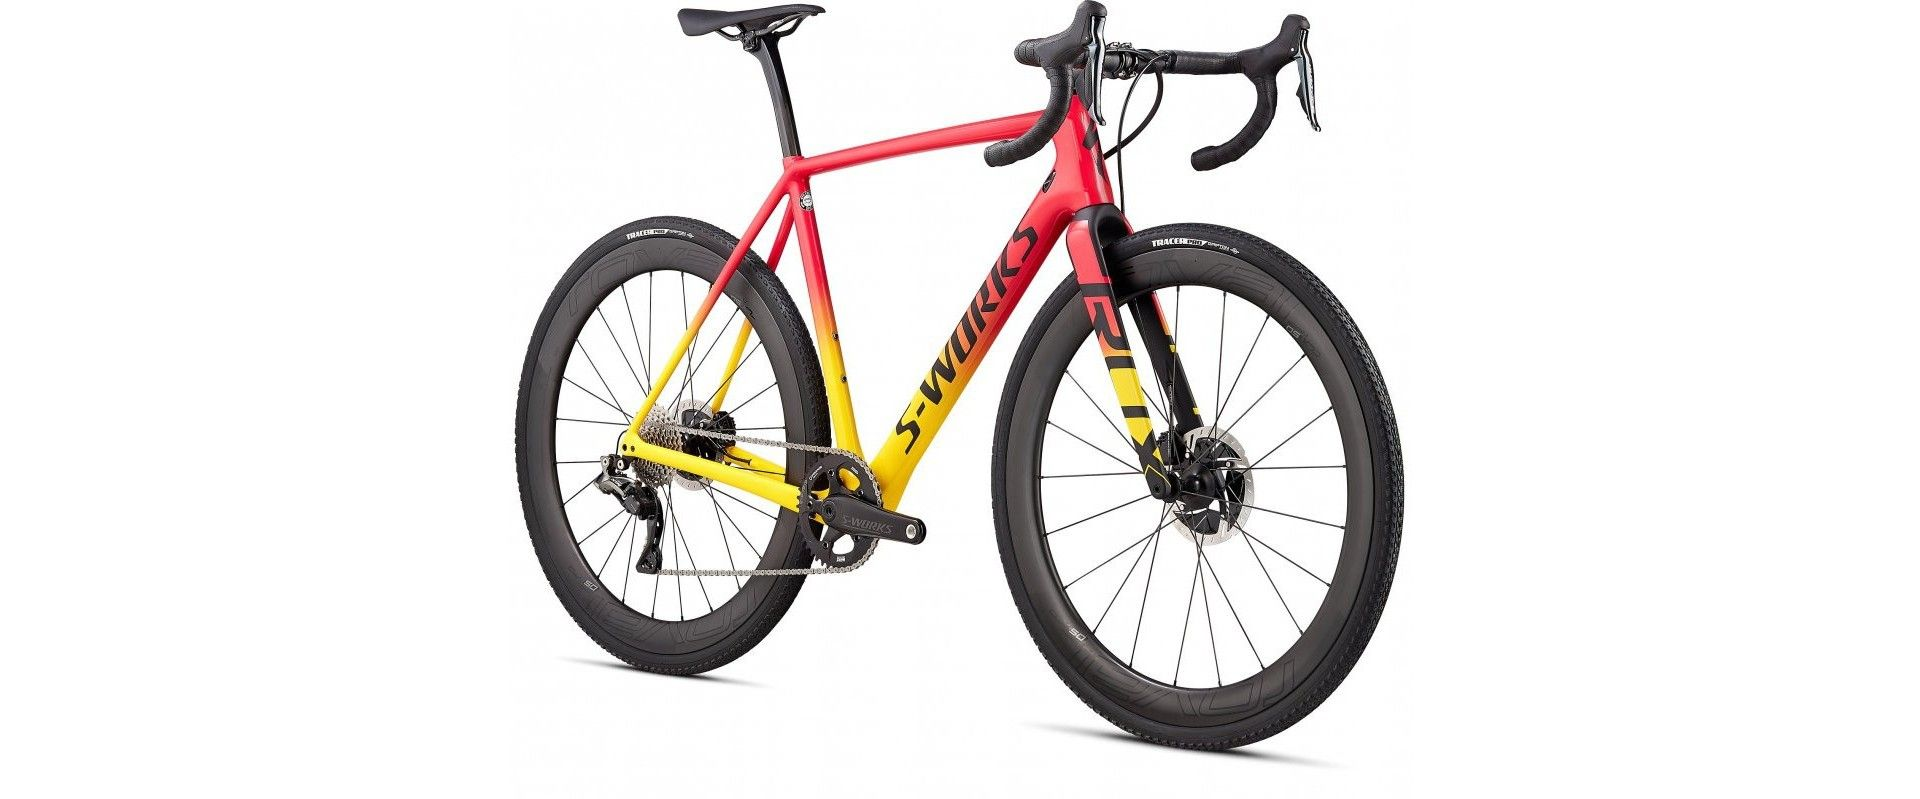 ♥ Buy Specialized Sirrus ♥ - Urban Bicycles - in IBKBike Specialized Concept Store España